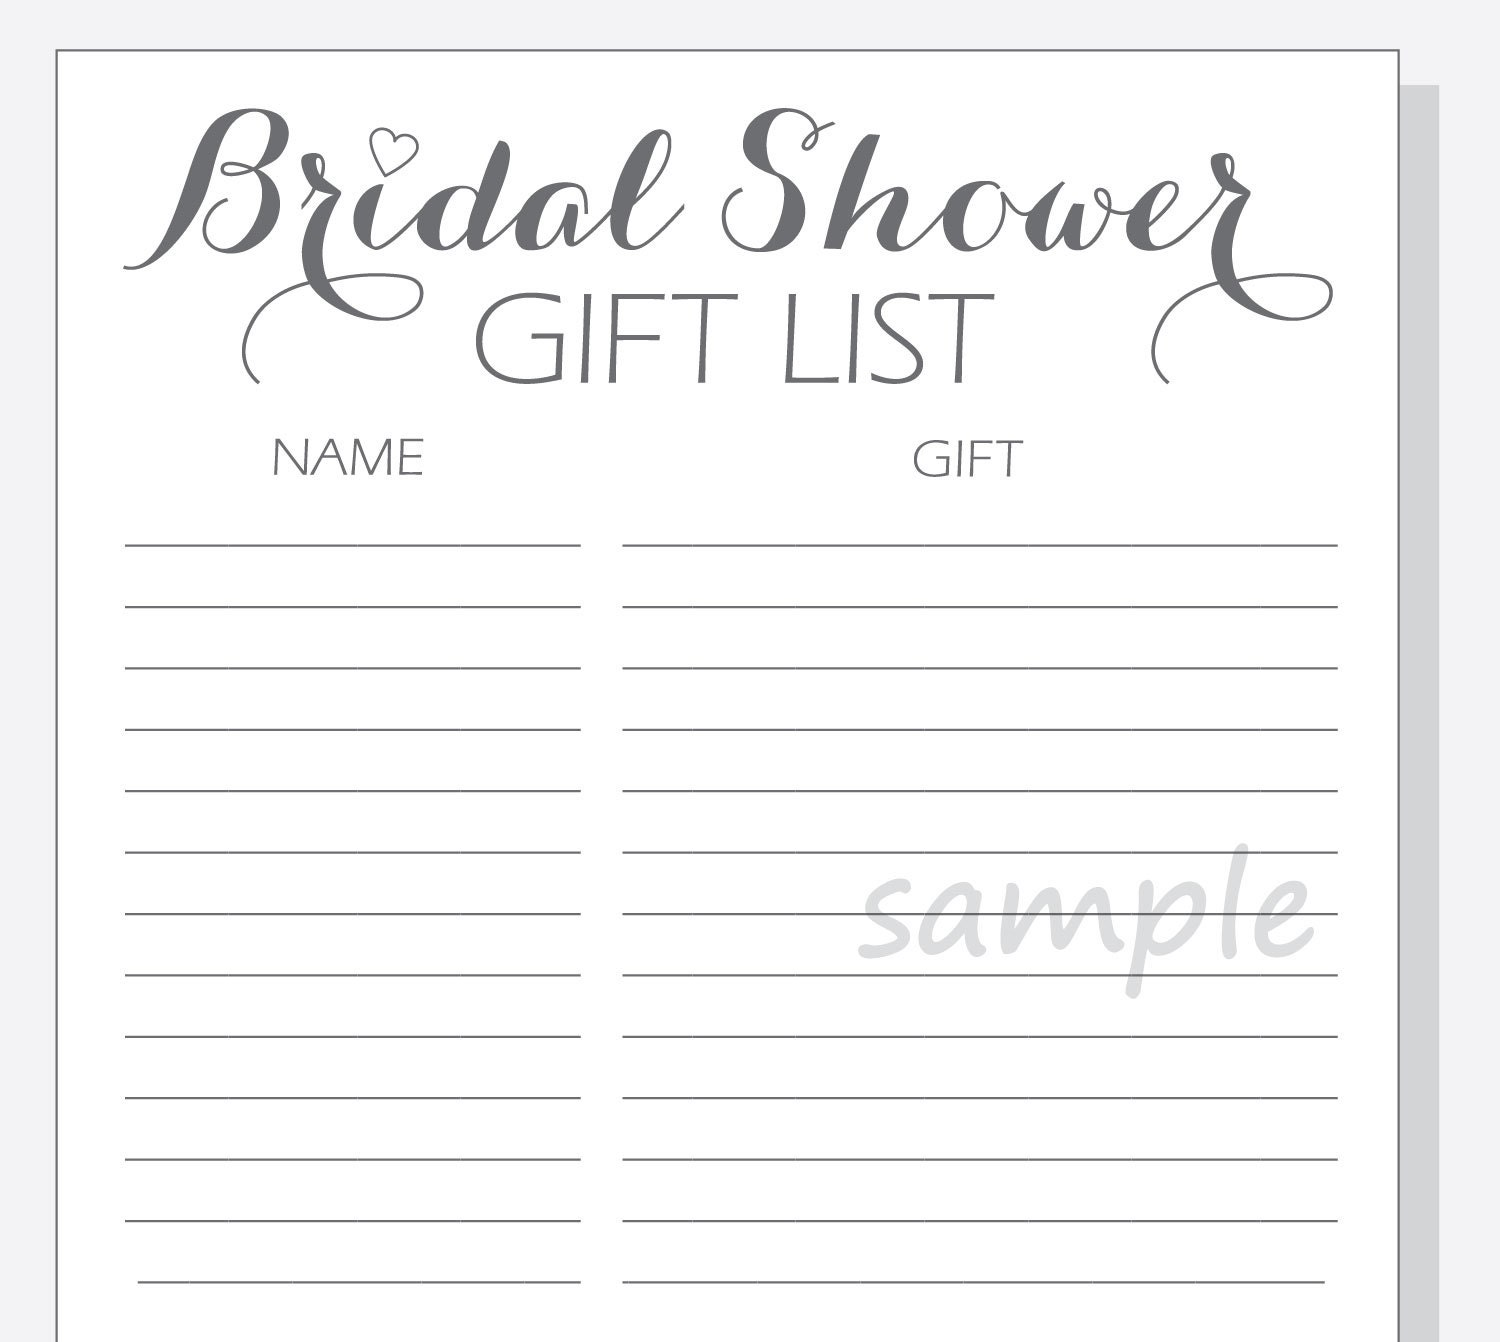 wedding gift list excel template - 28 images - best photos of ...